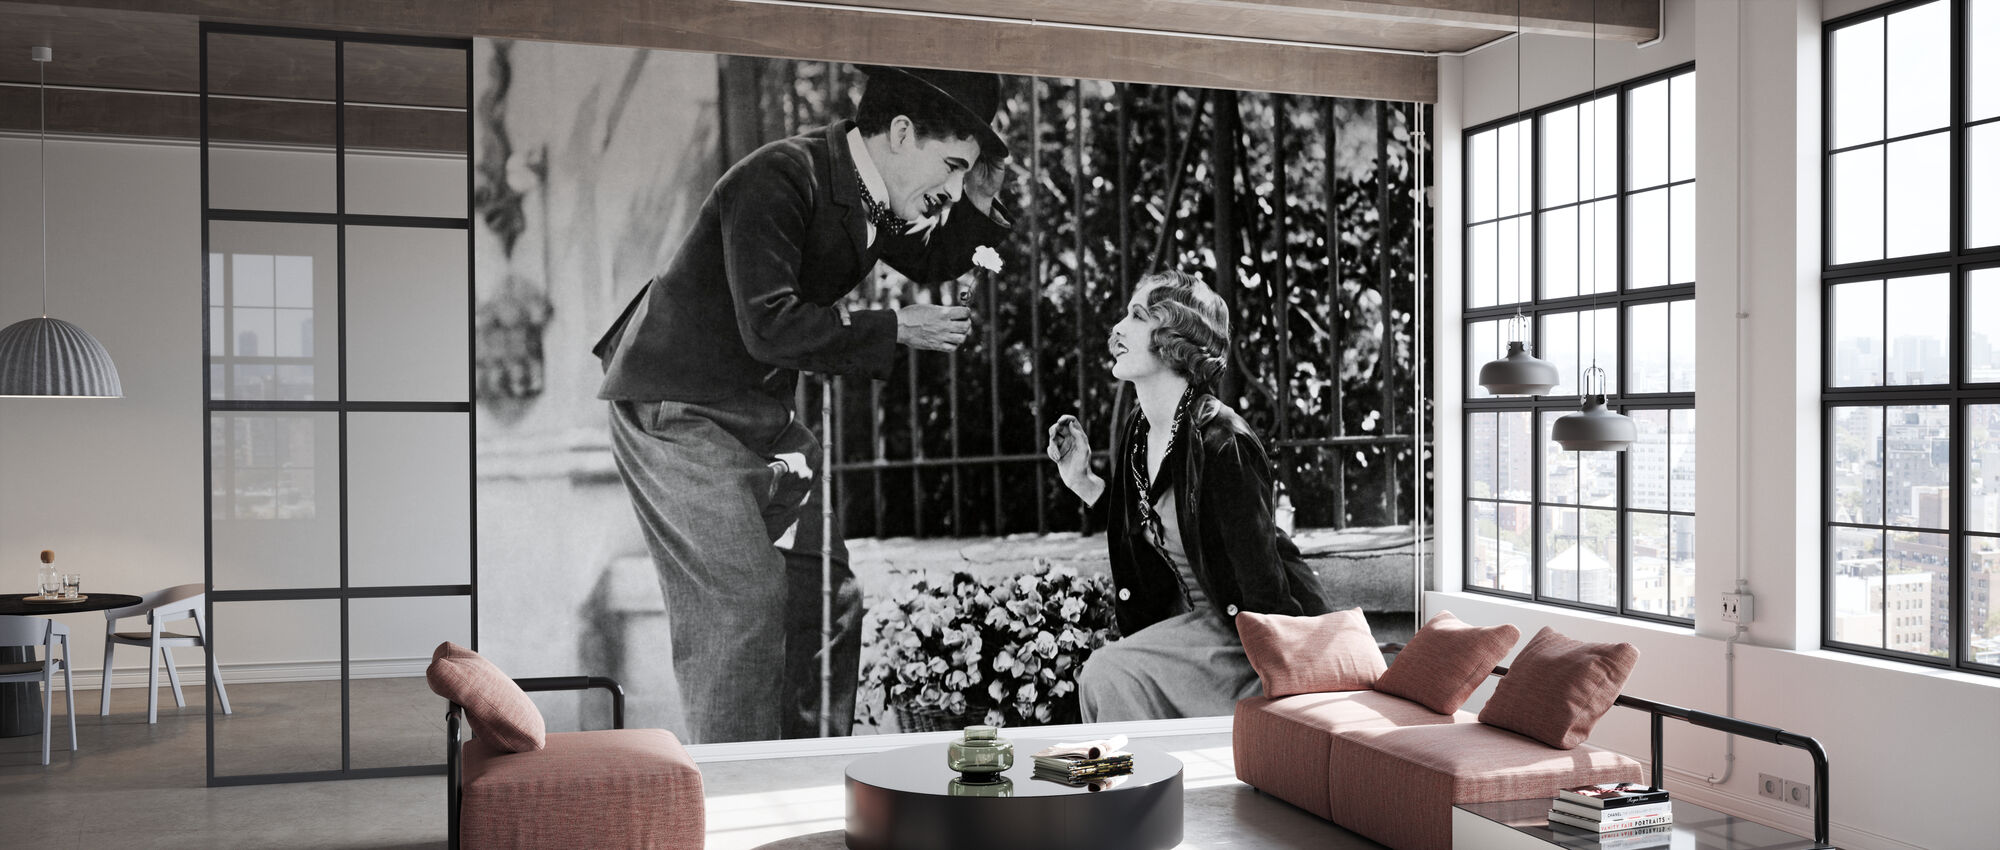 Charlie Chaplin and Virginia Cherrill in City Lights - Wallpaper - Office